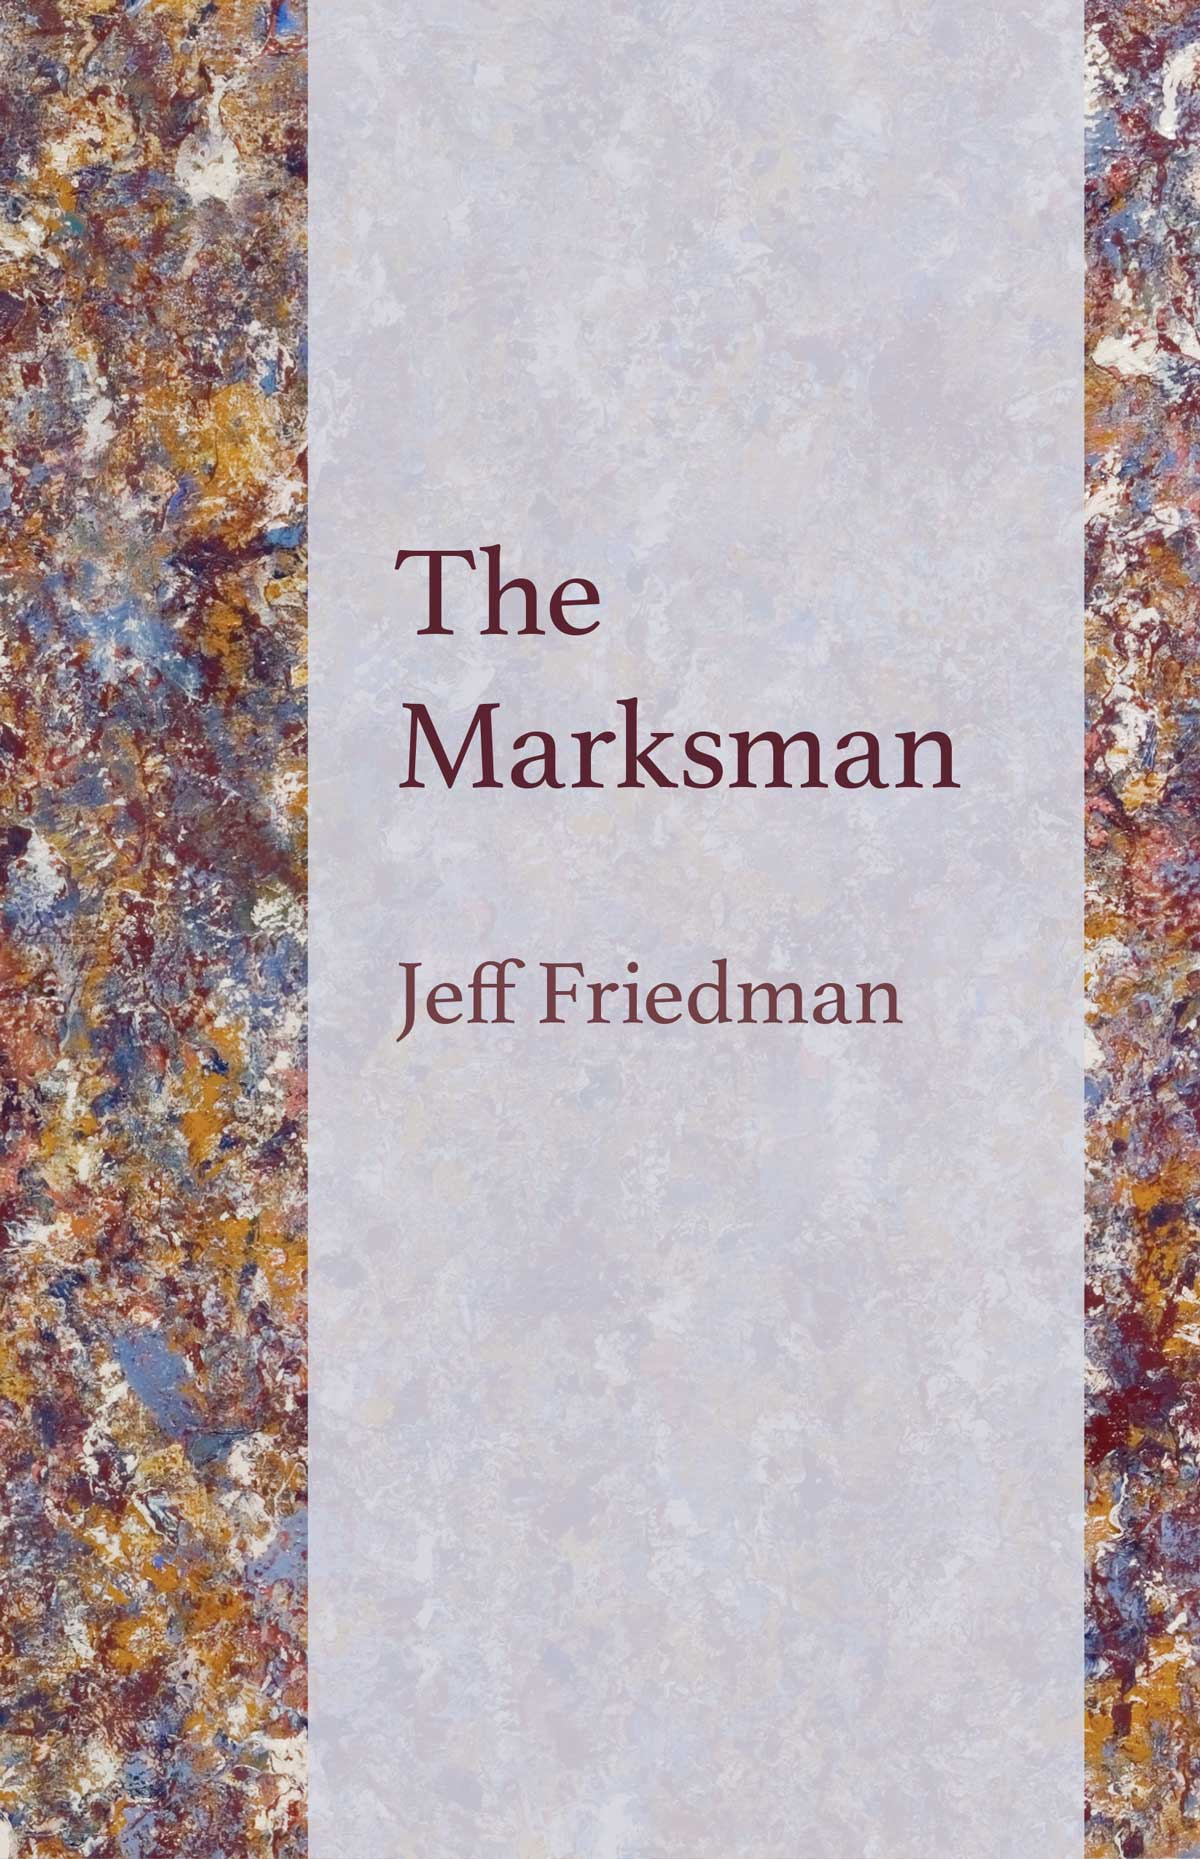 The Marksman - Jeff Friedman